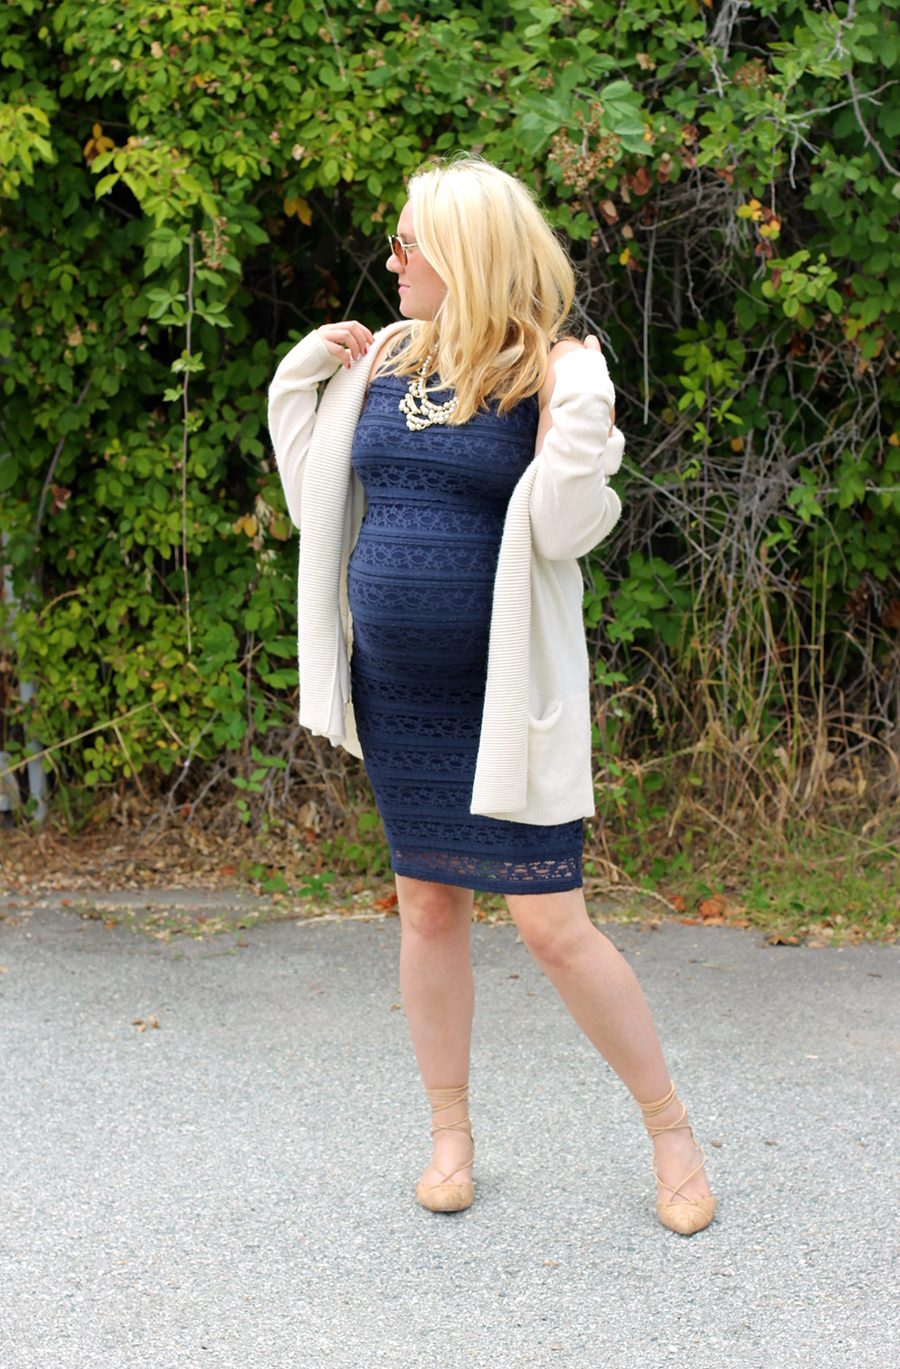 Ingrid and Isabel navy lace dress-Maternity Style-Outfit Inspiration-Bay Area Fashion Blogger-Have Need Want-Pregnancy Style